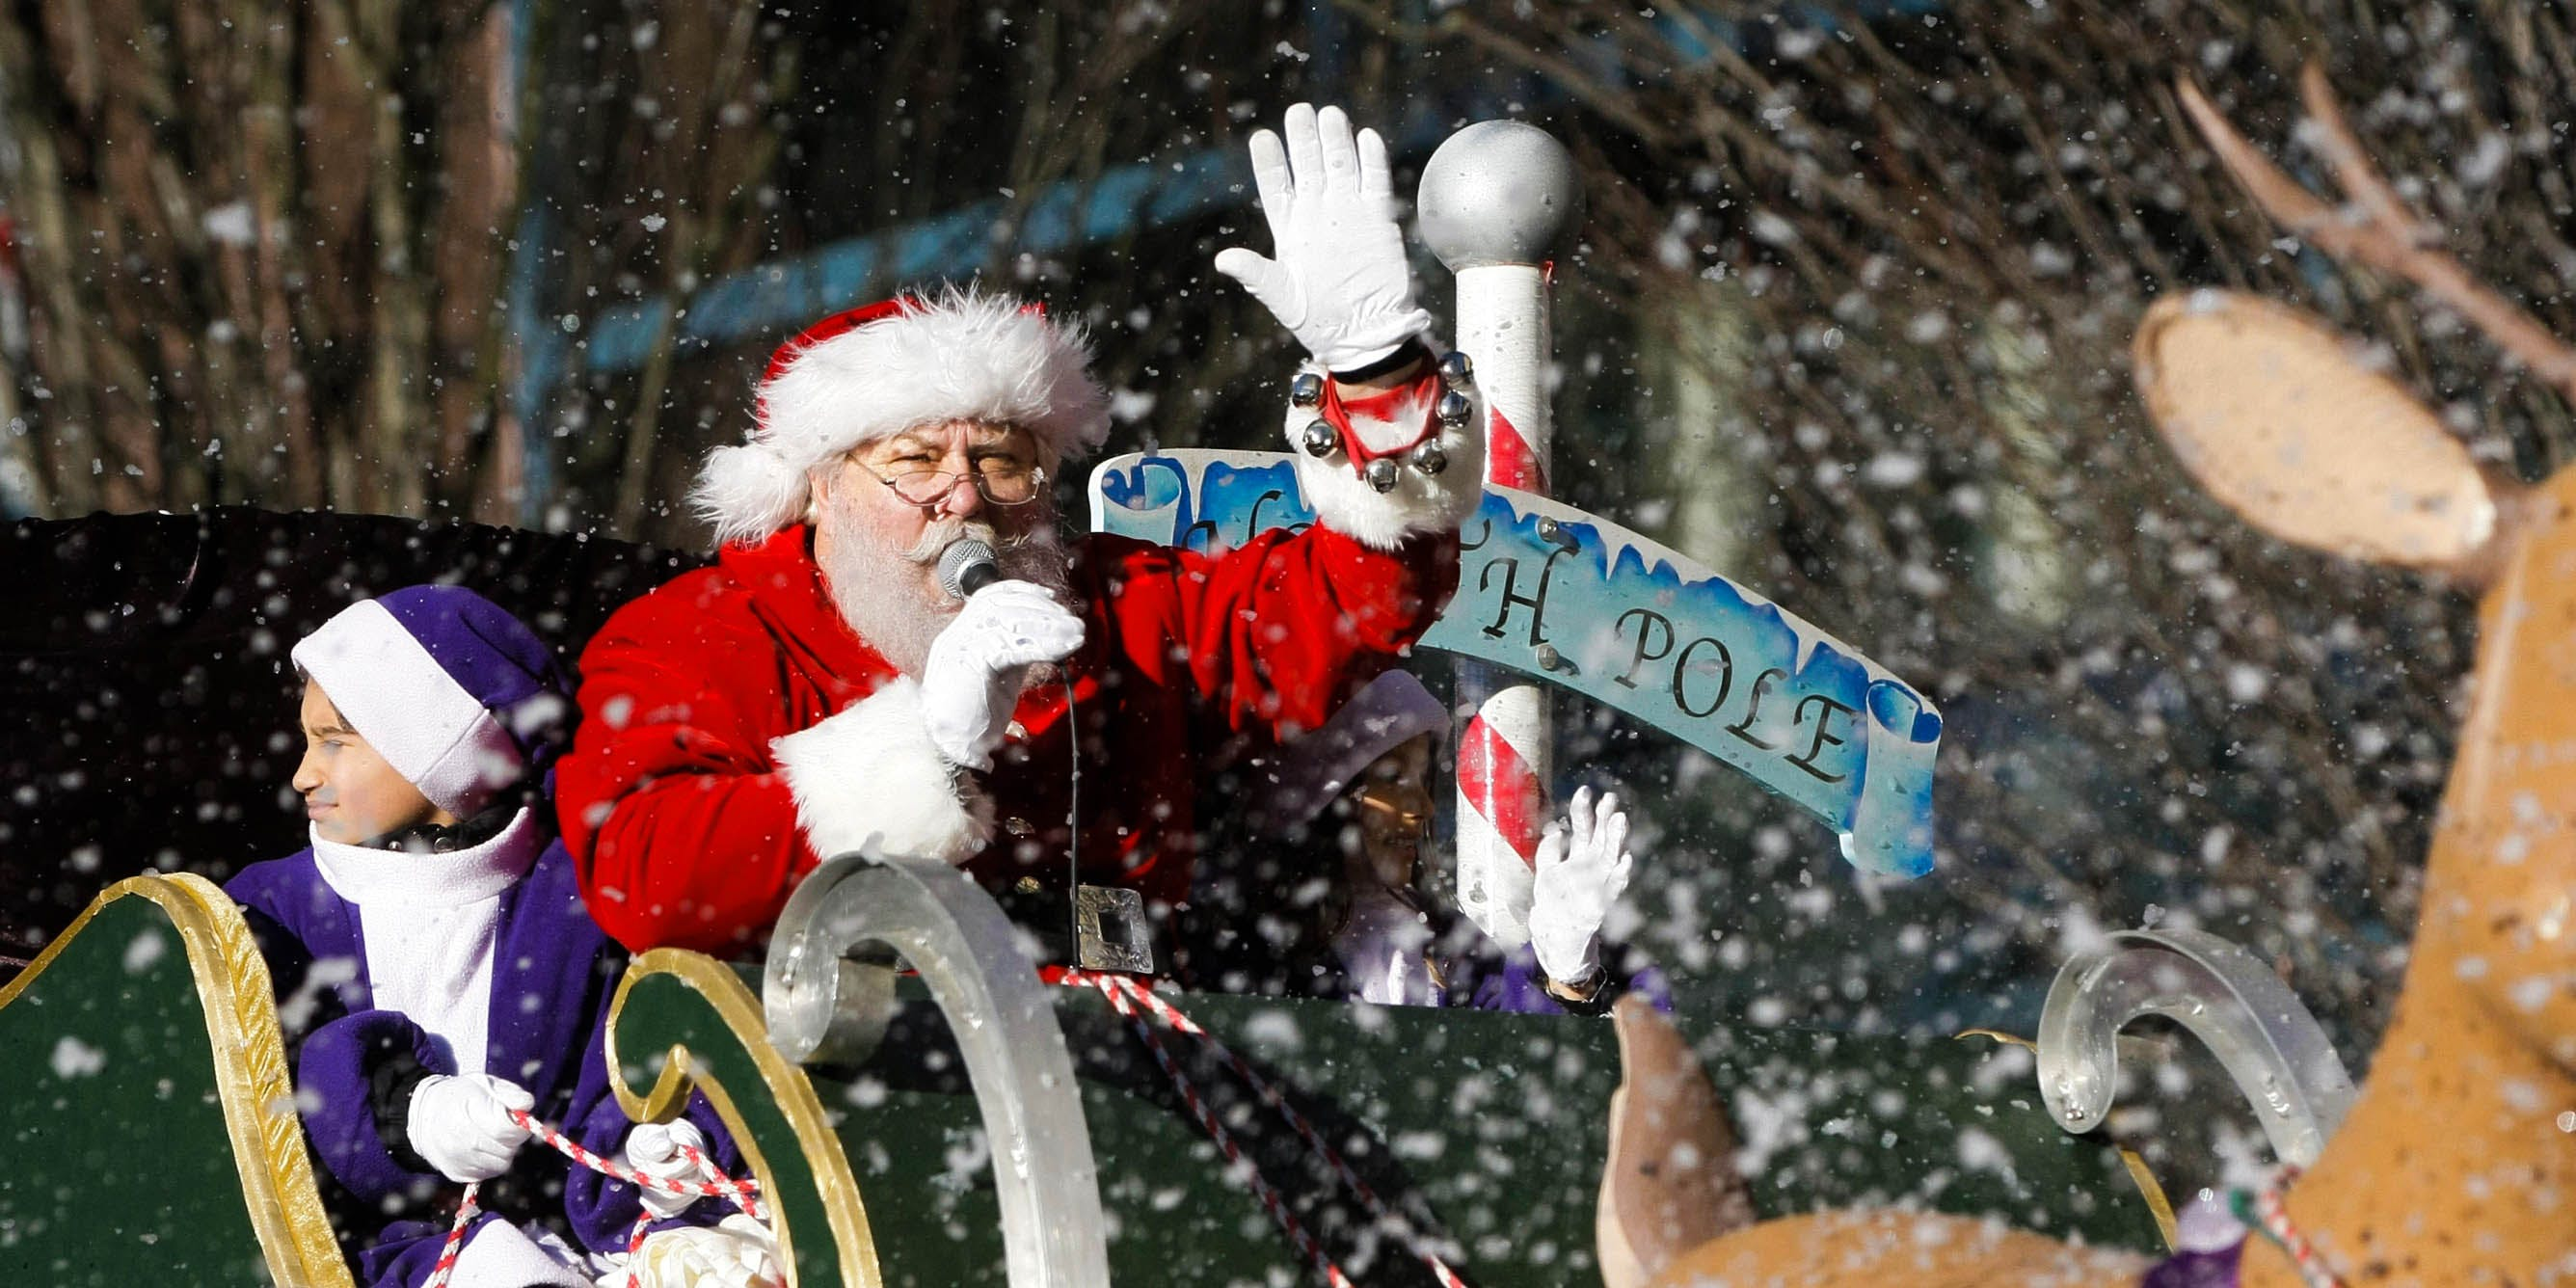 Santa Claus waves at the crowd from his float during the annual Vancouver Santa Claus Parade.